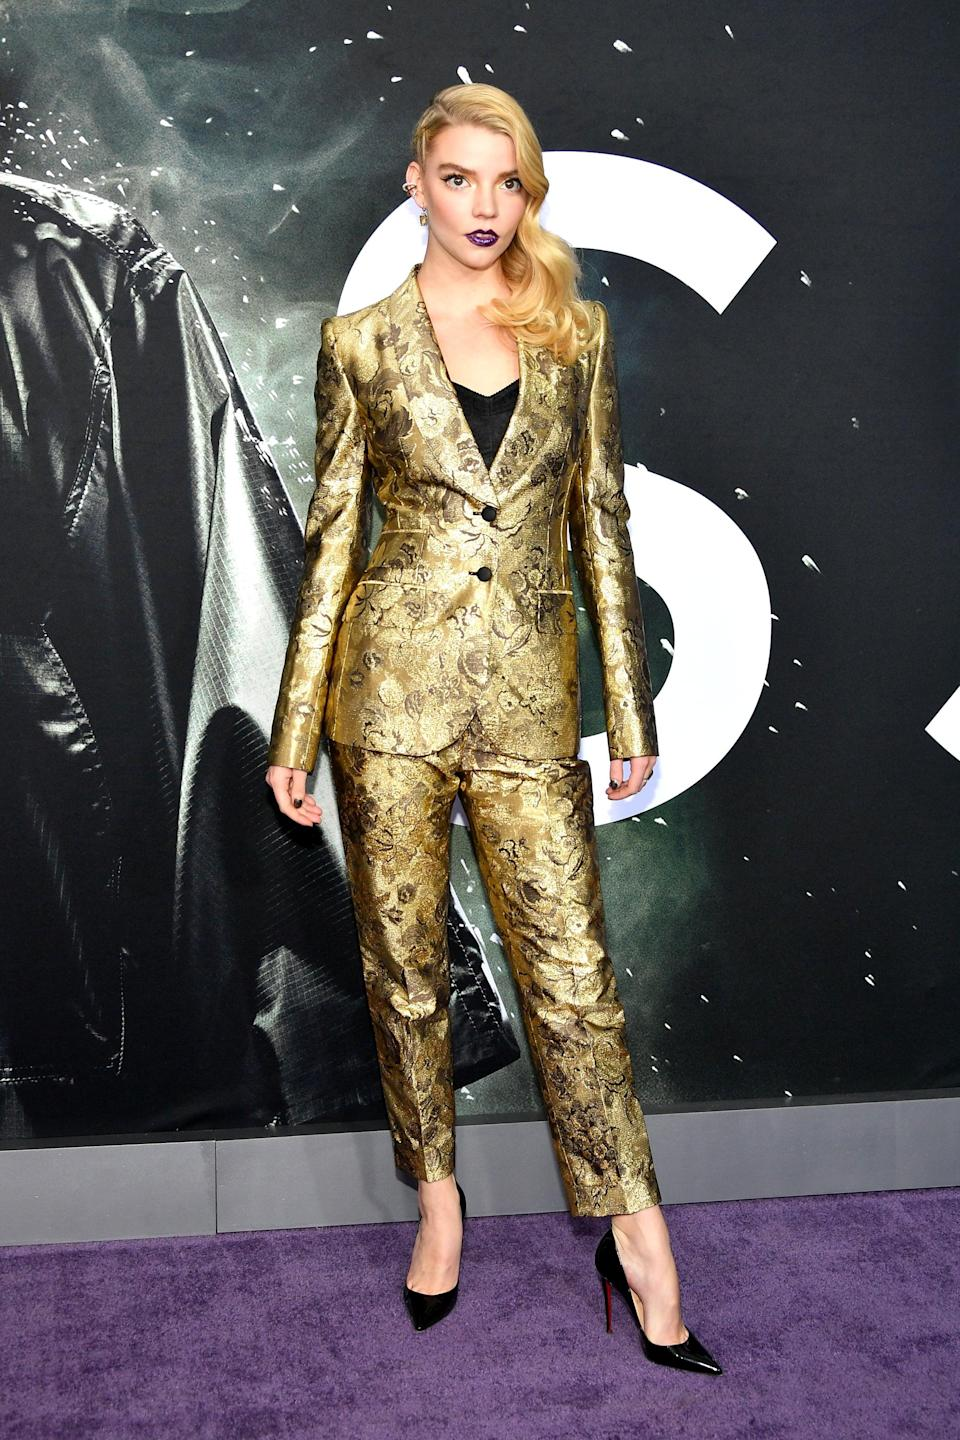 <p>Anya wore a gold Dolce &amp; Gabbana suit, teamed with Christian Louboutin heels and jewelry by Effy and Jemma Wynne.</p>